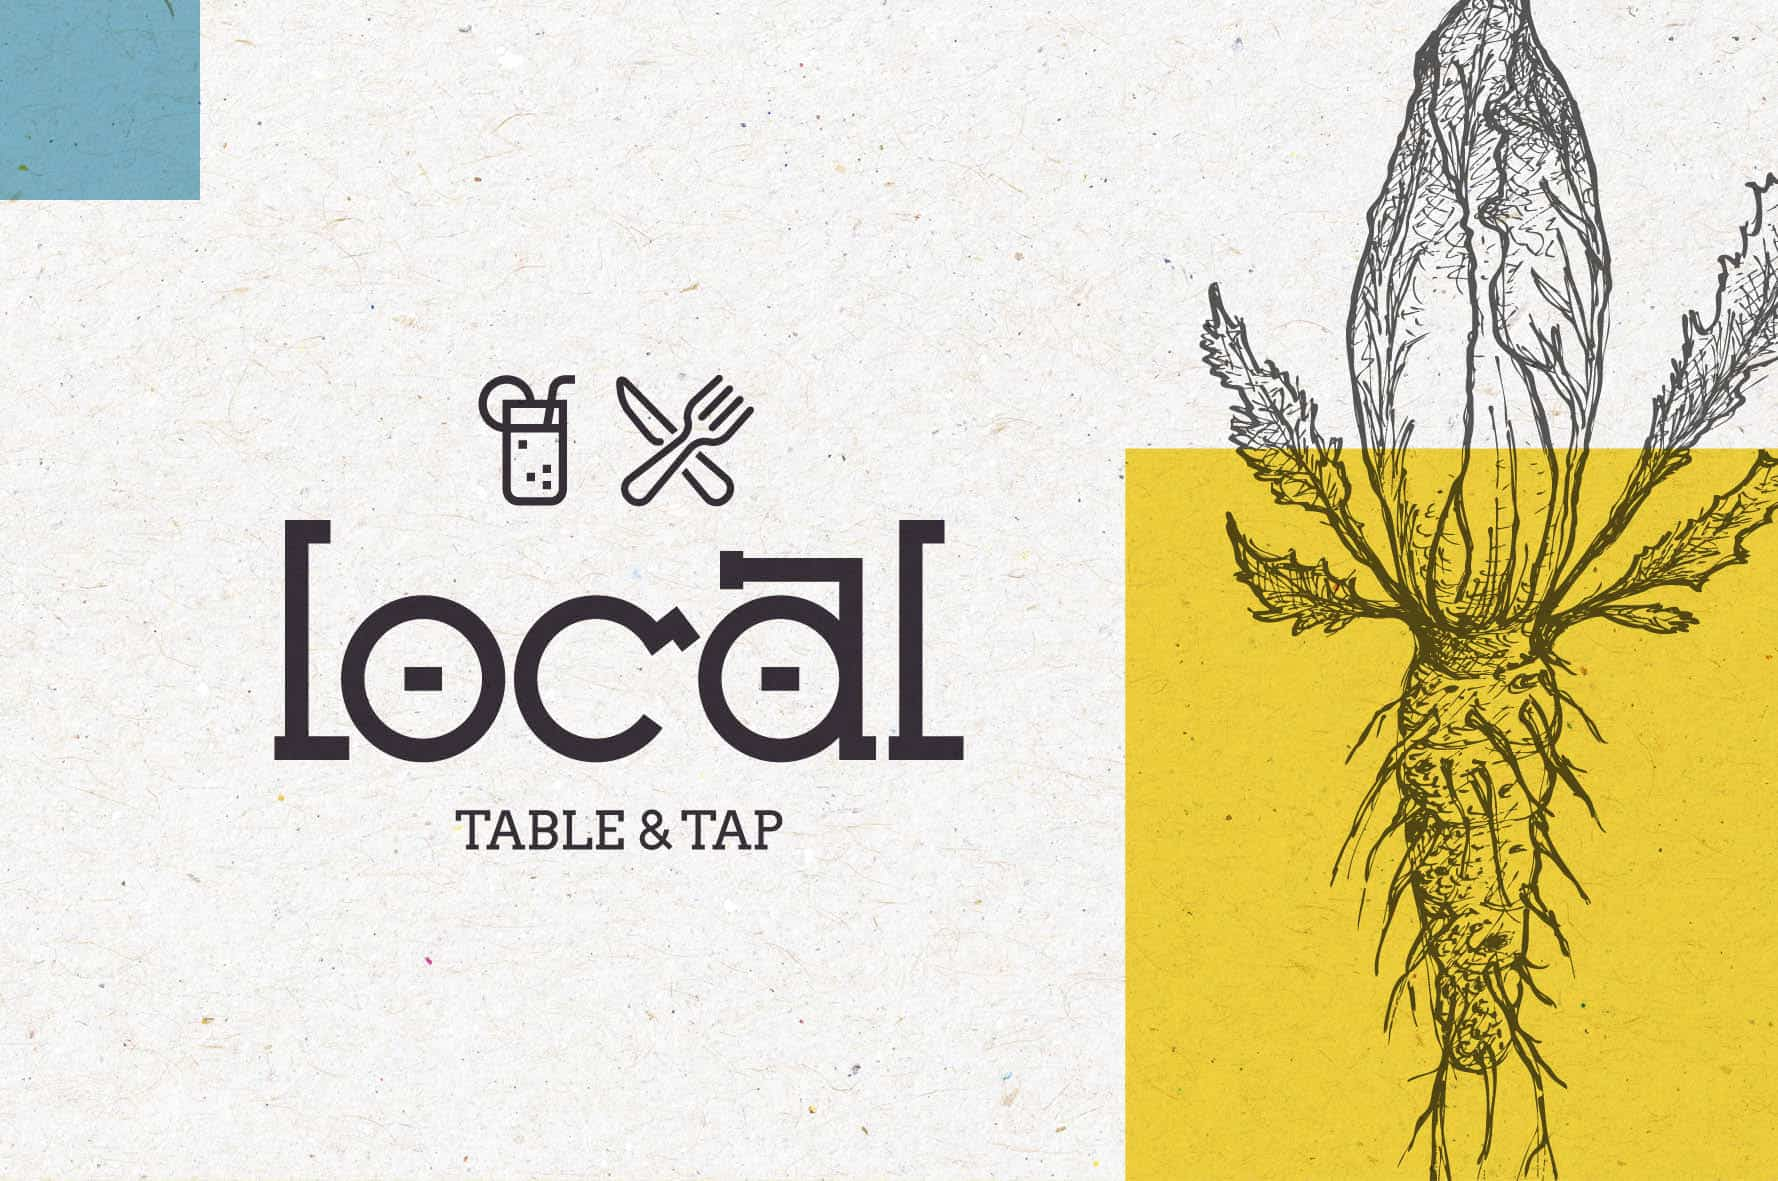 Local, Table & Tap restaurant marketing